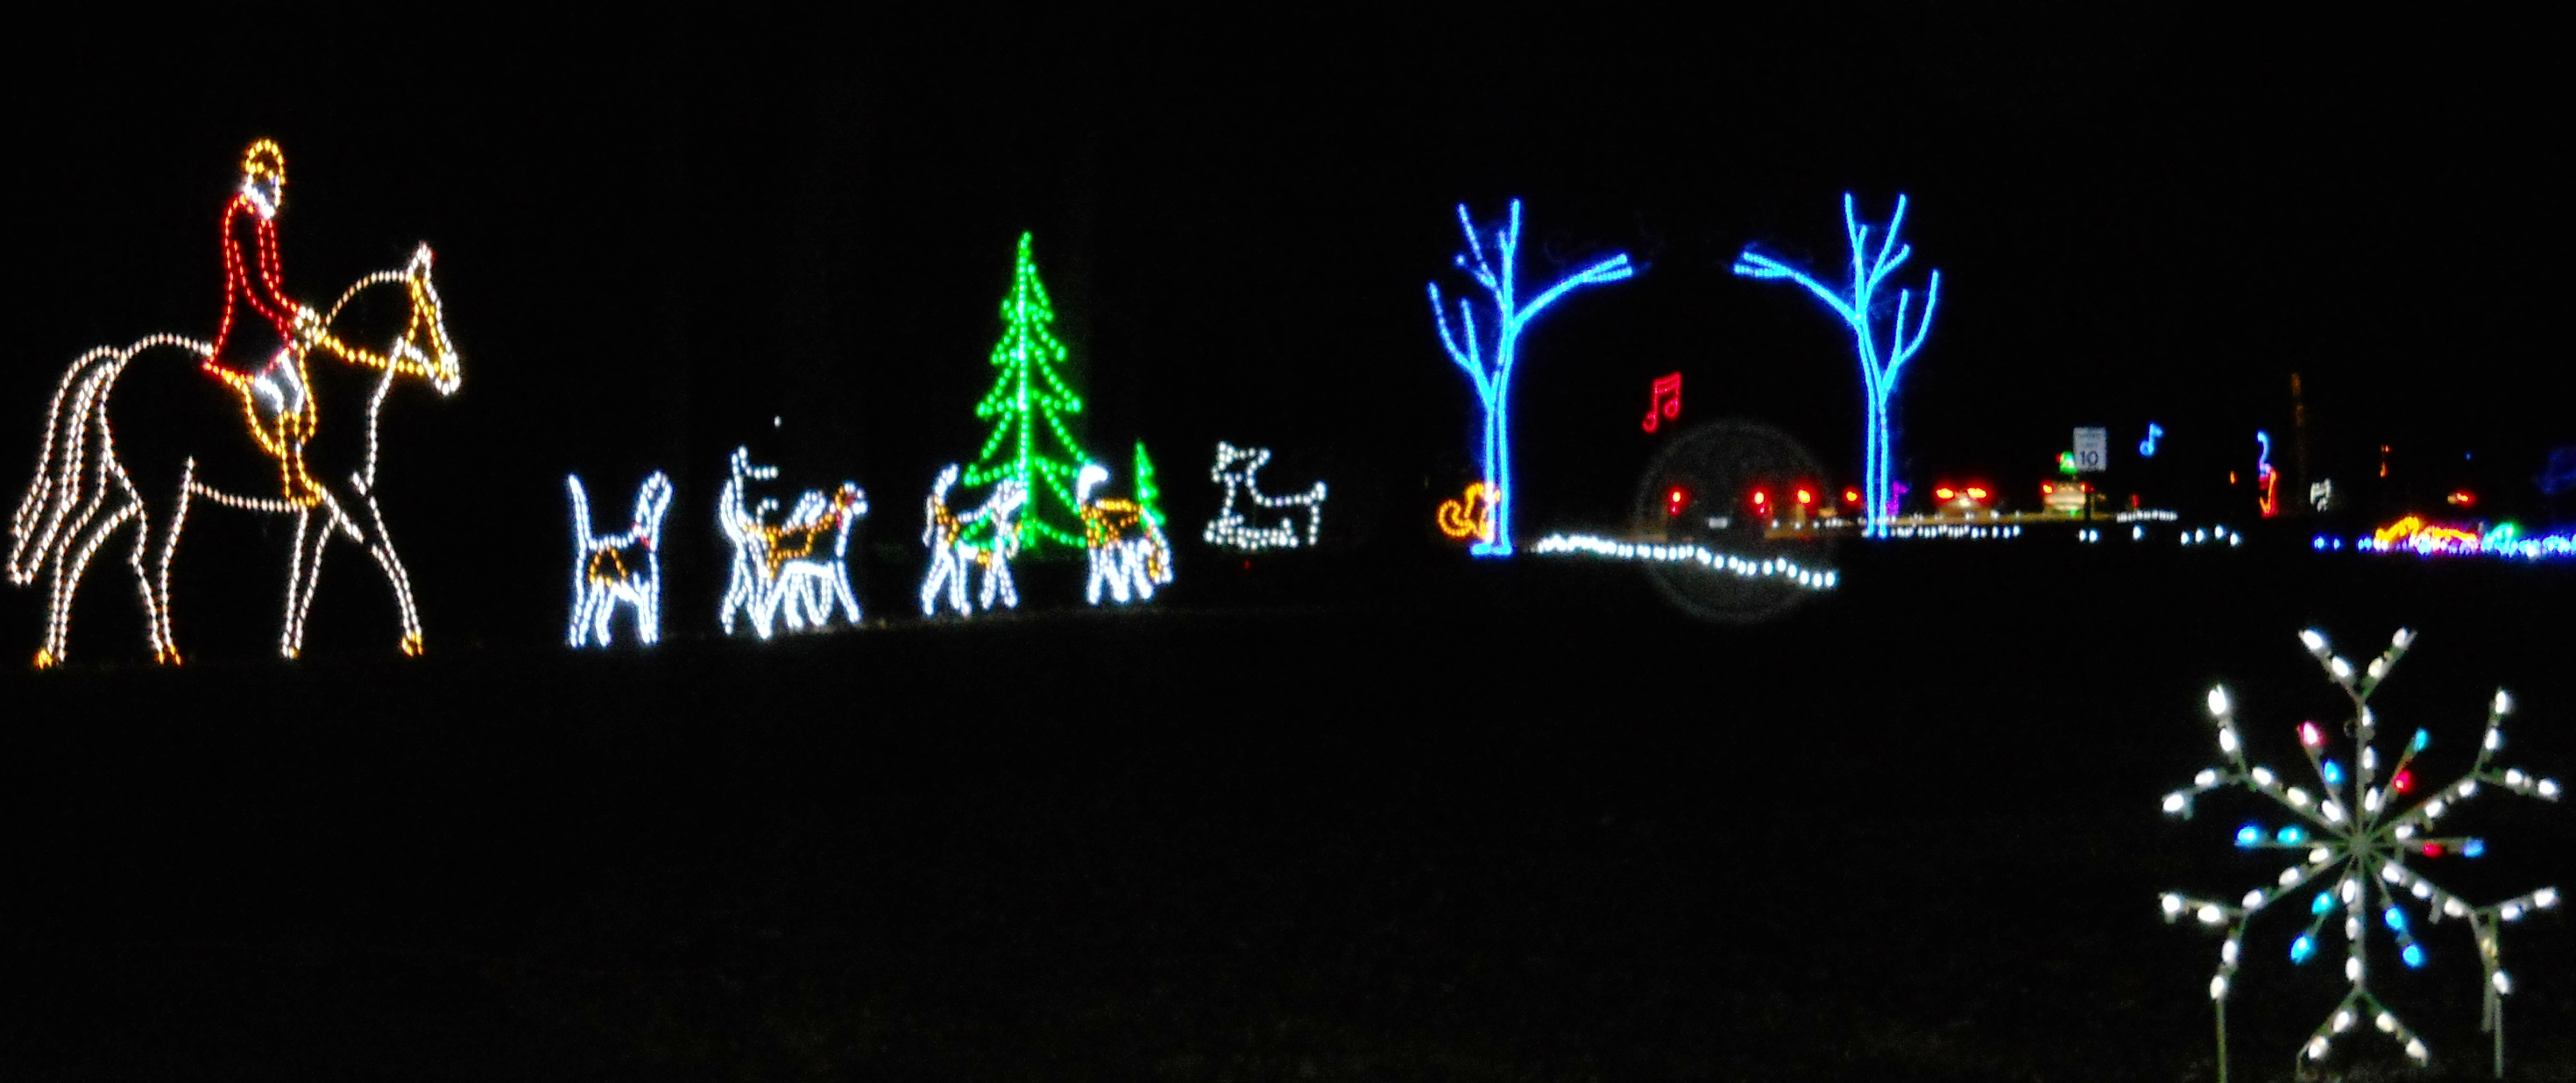 Bull Run Christmas Lights Pictures Wallpapers